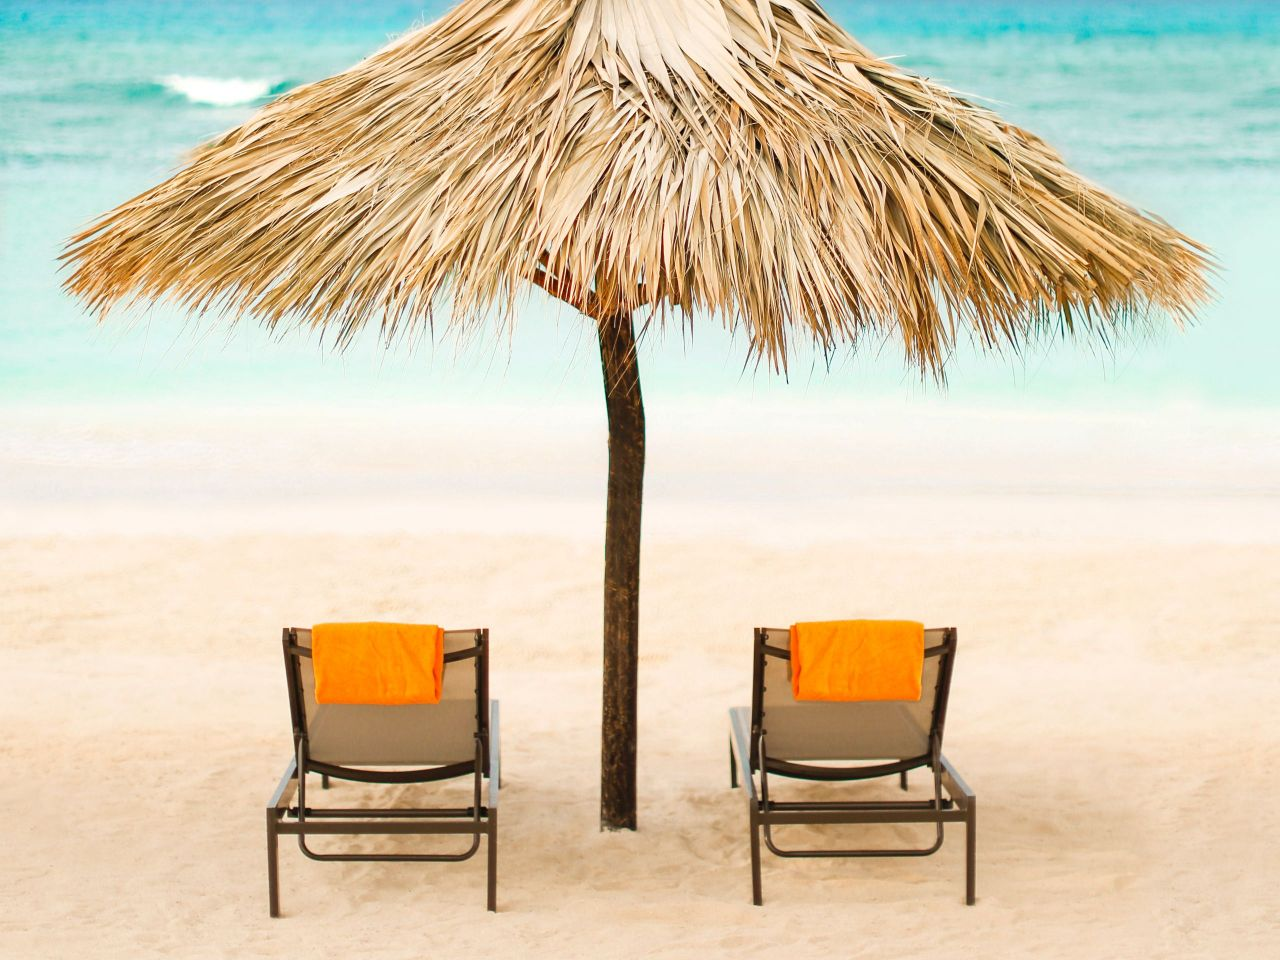 Two beach chairs under palm umbrella